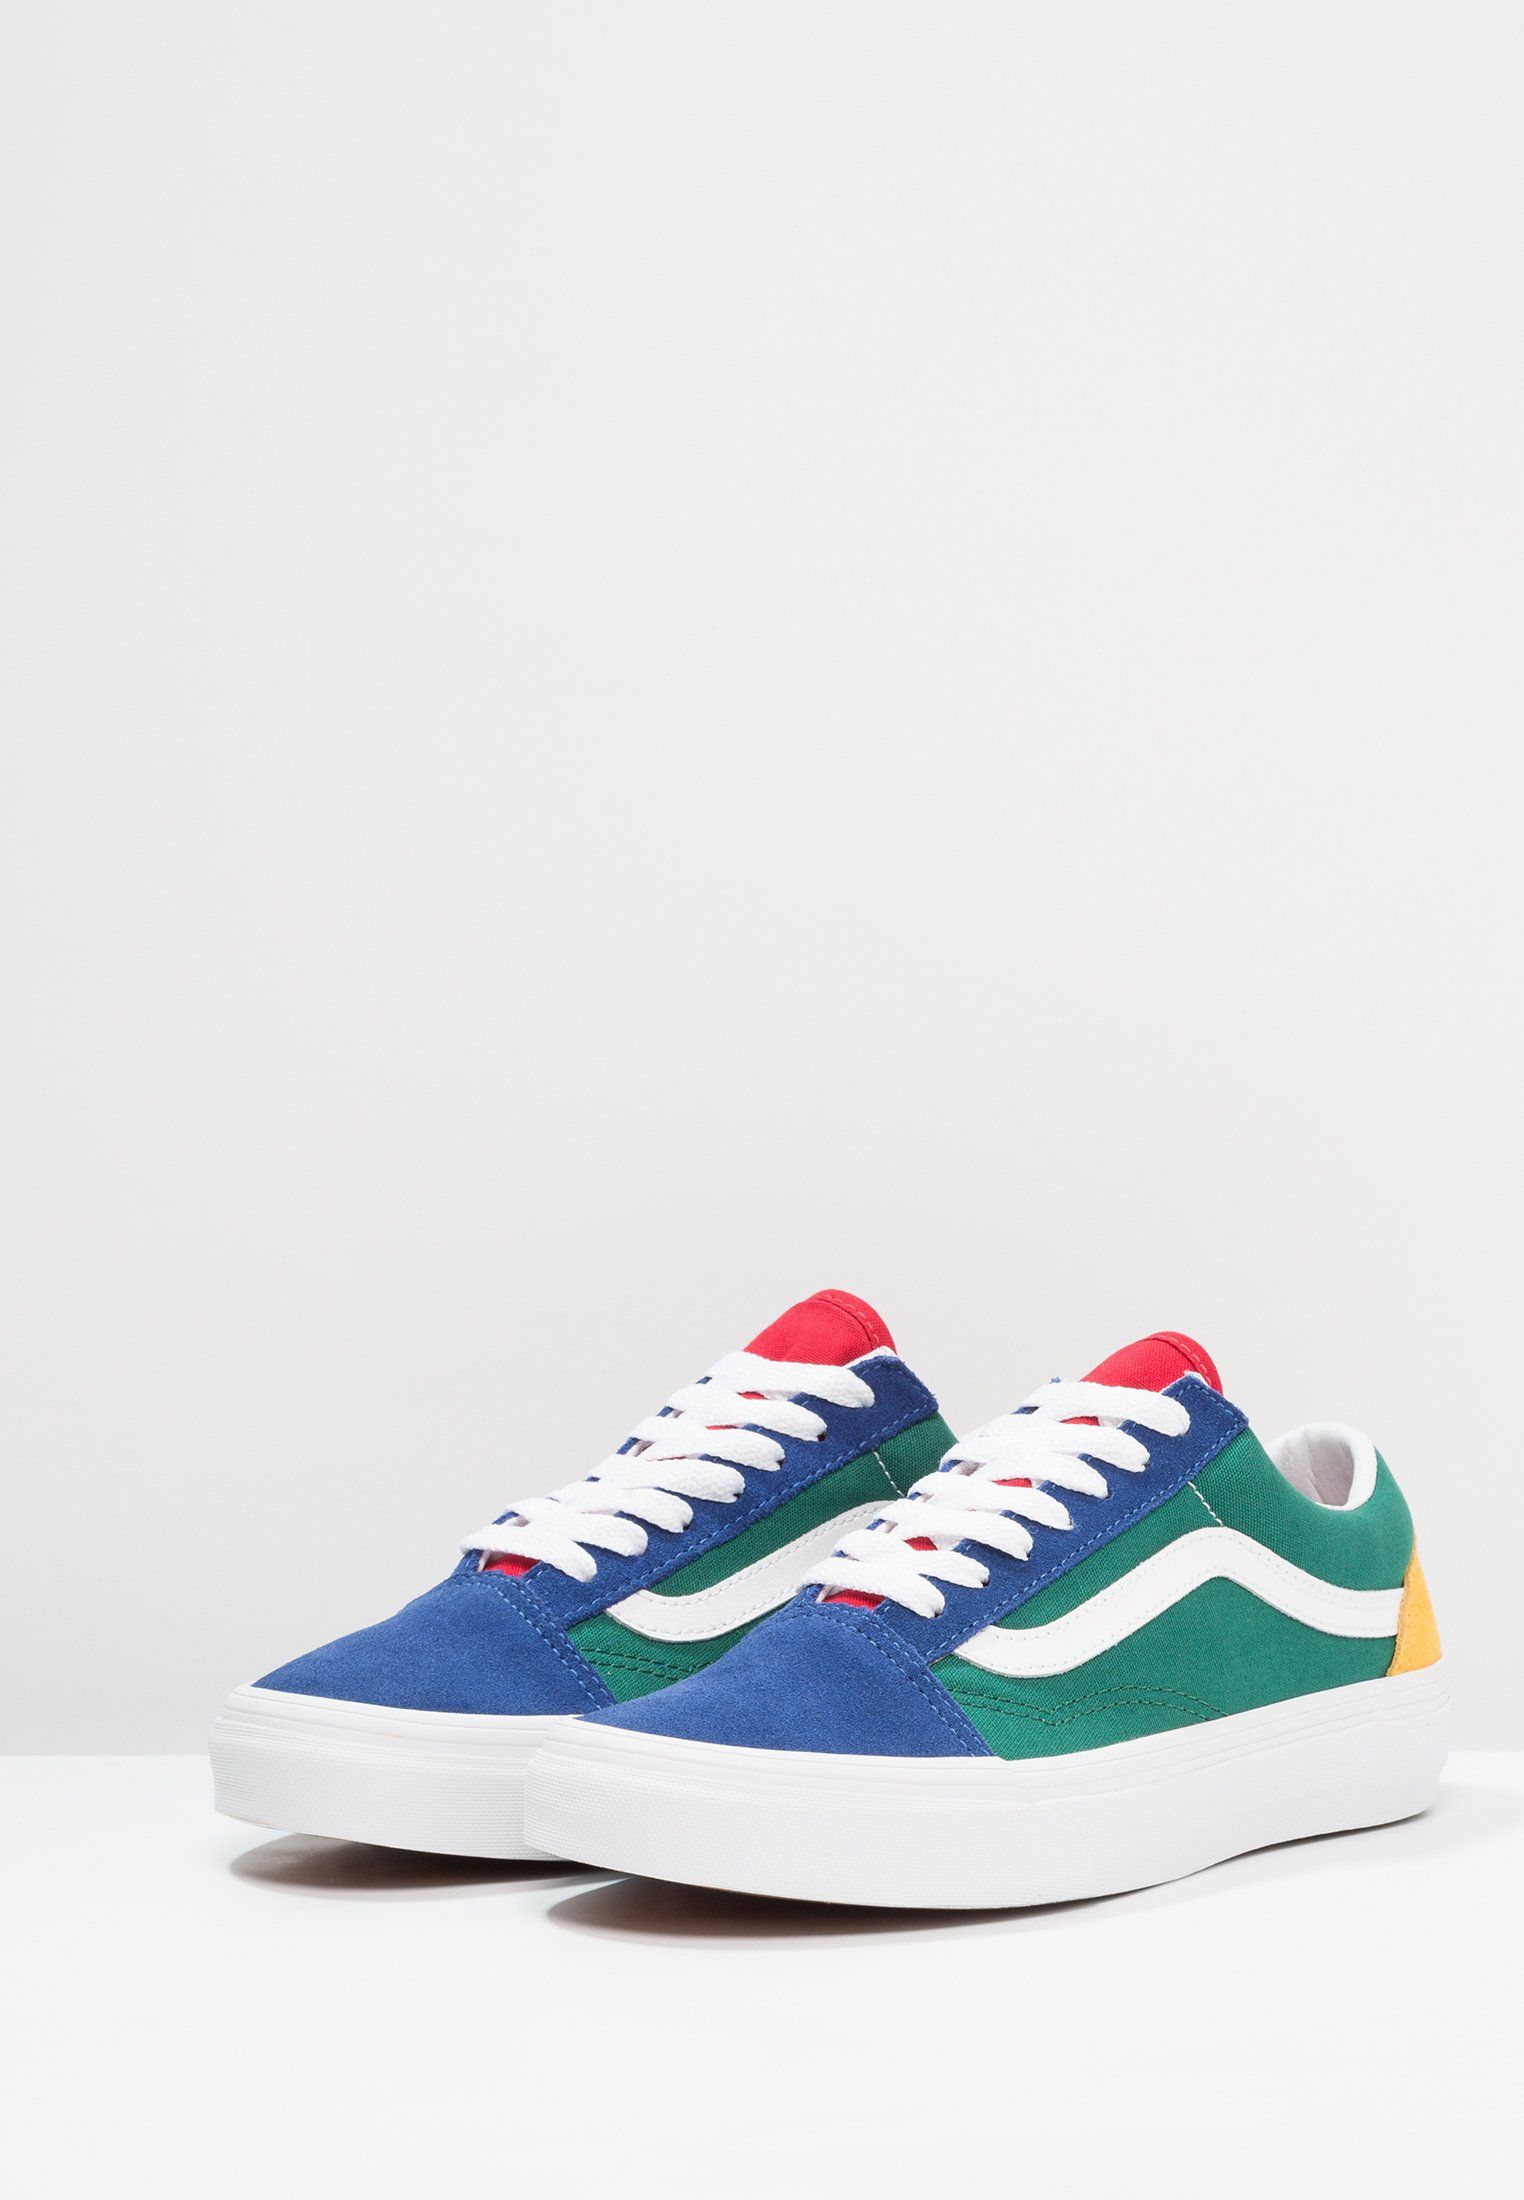 b1f3eac933 Chaussures Vans UA OLD SKOOL - Baskets basses - blue green yellow  multicolore  79